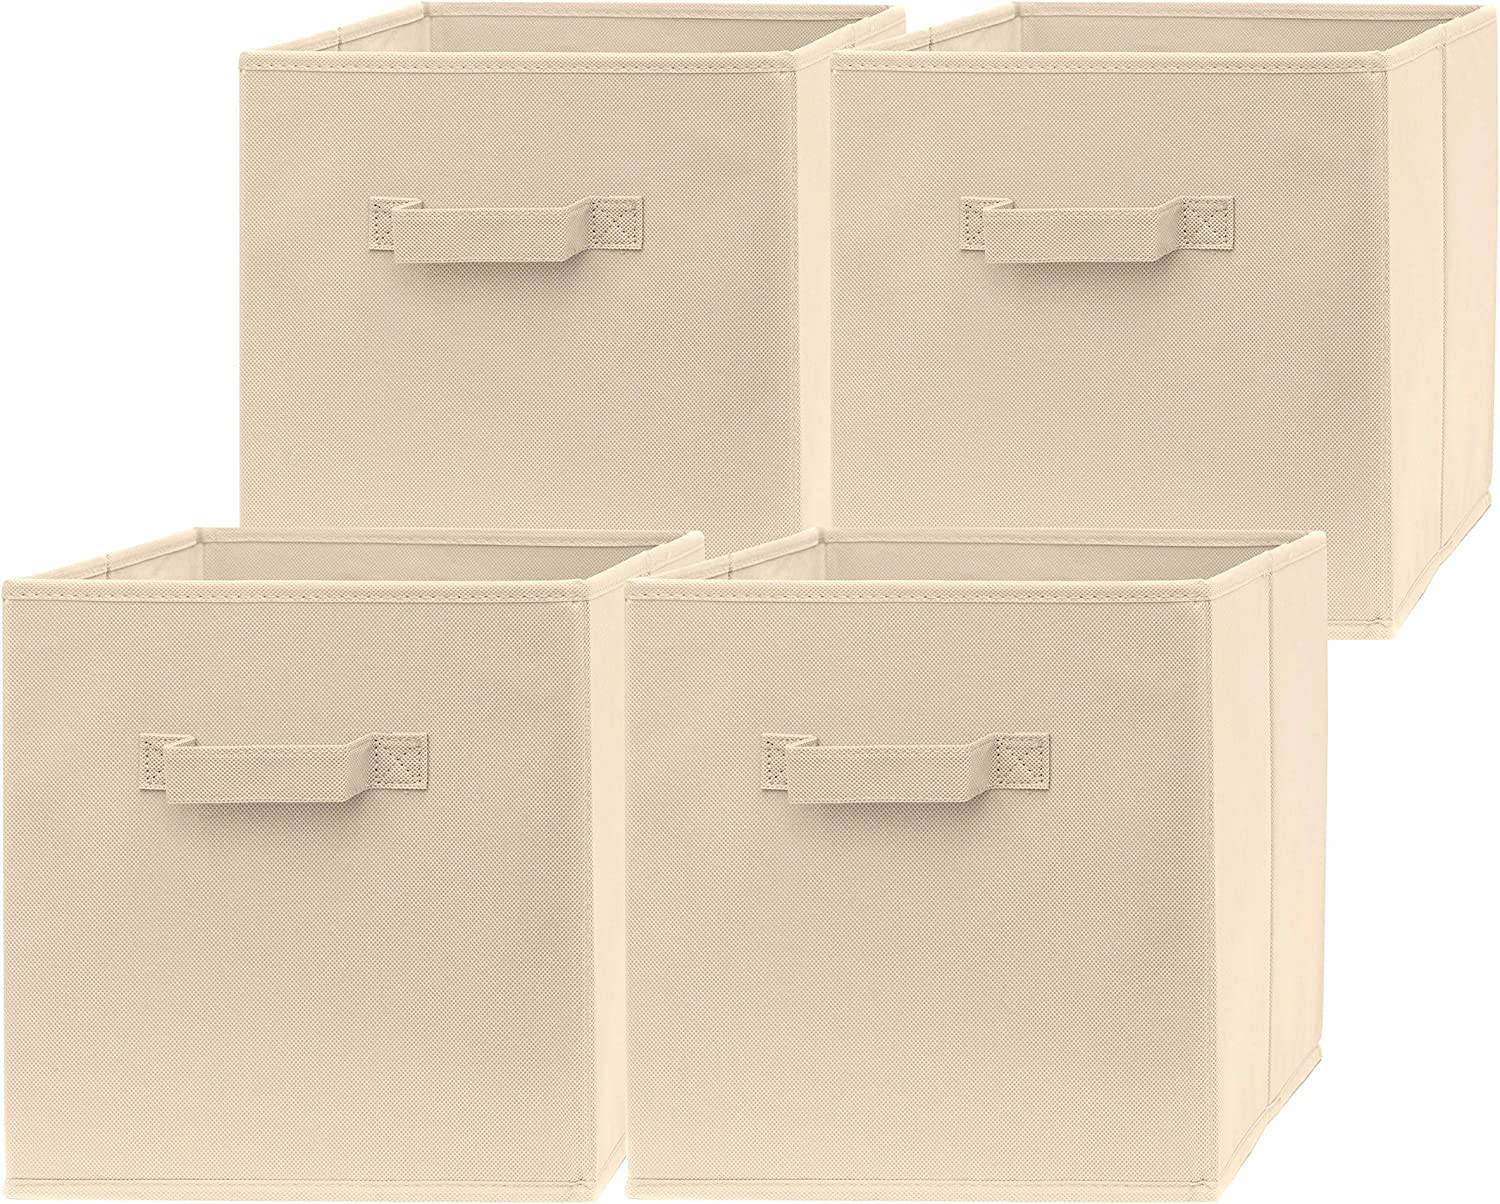 Pomatree 13x13x13 Inch Storage Cubes - 4 Pack - Large and Sturdy Storage Bins | Dual Handles, Foldable | Cube Organizer Bin | Fabric Baskets for Organizing Closet, Clothes and Toys (Beige)